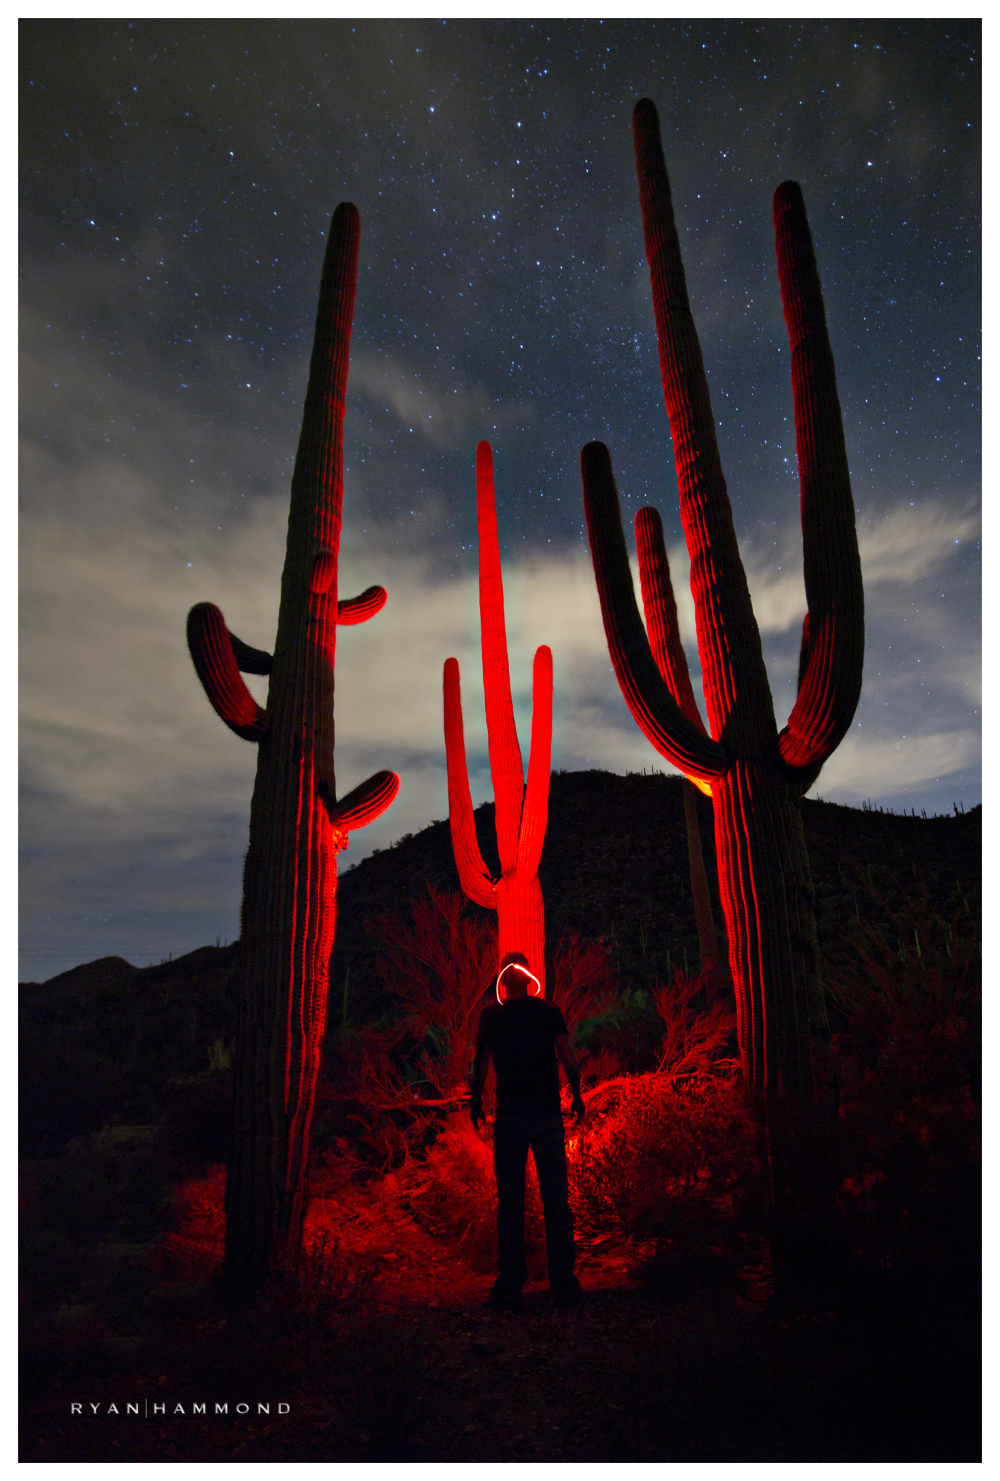 saguaros intense red alien night sky photographer